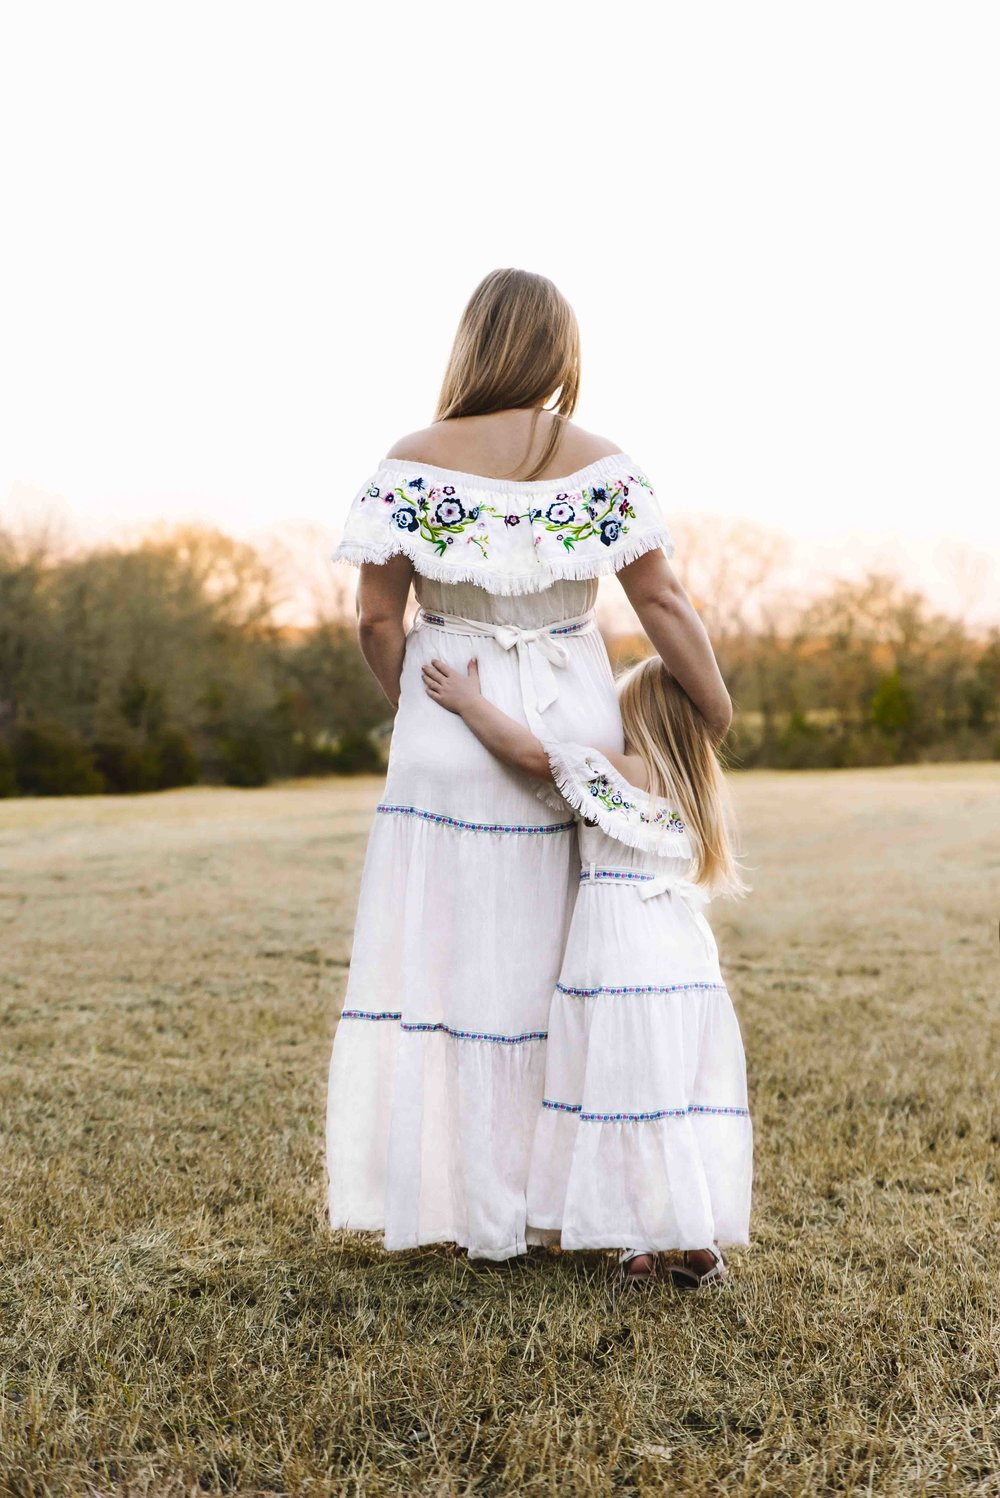 Anne Clase Photography x Belle and Kai | Mommy & Me FW18 Collection